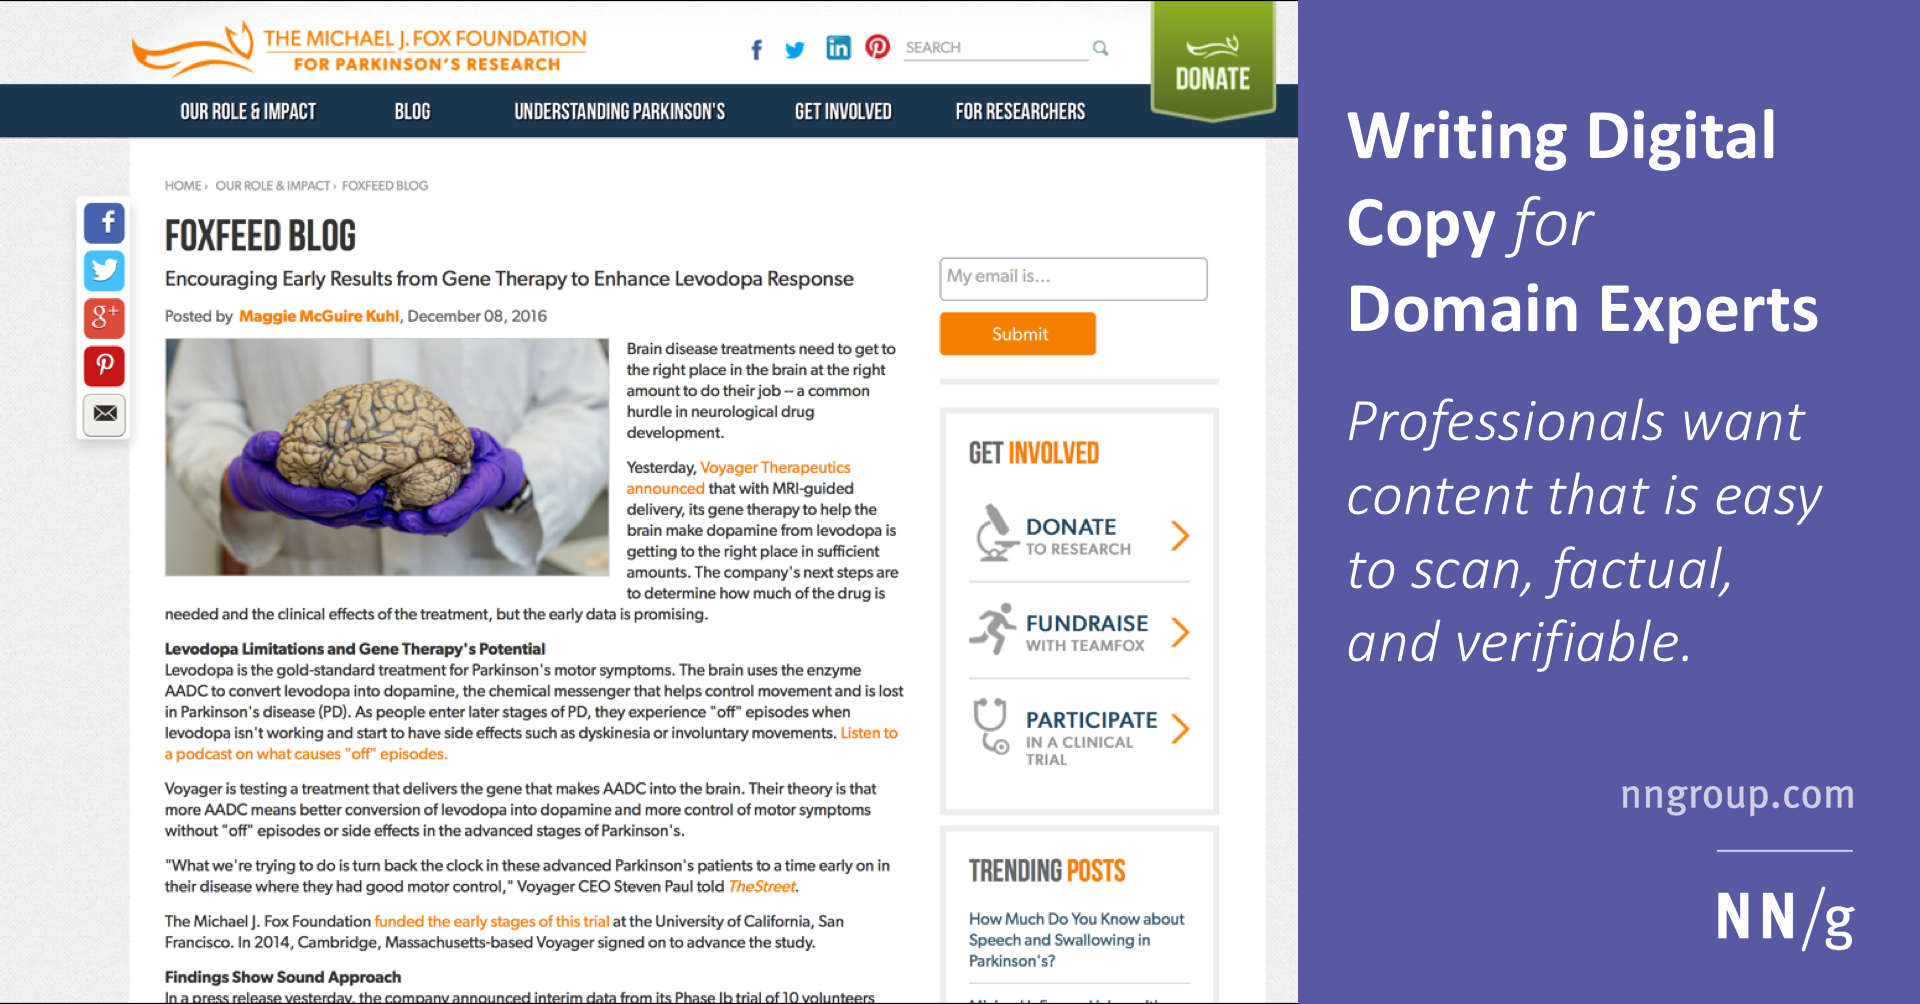 Writing Digital Copy for Domain Experts